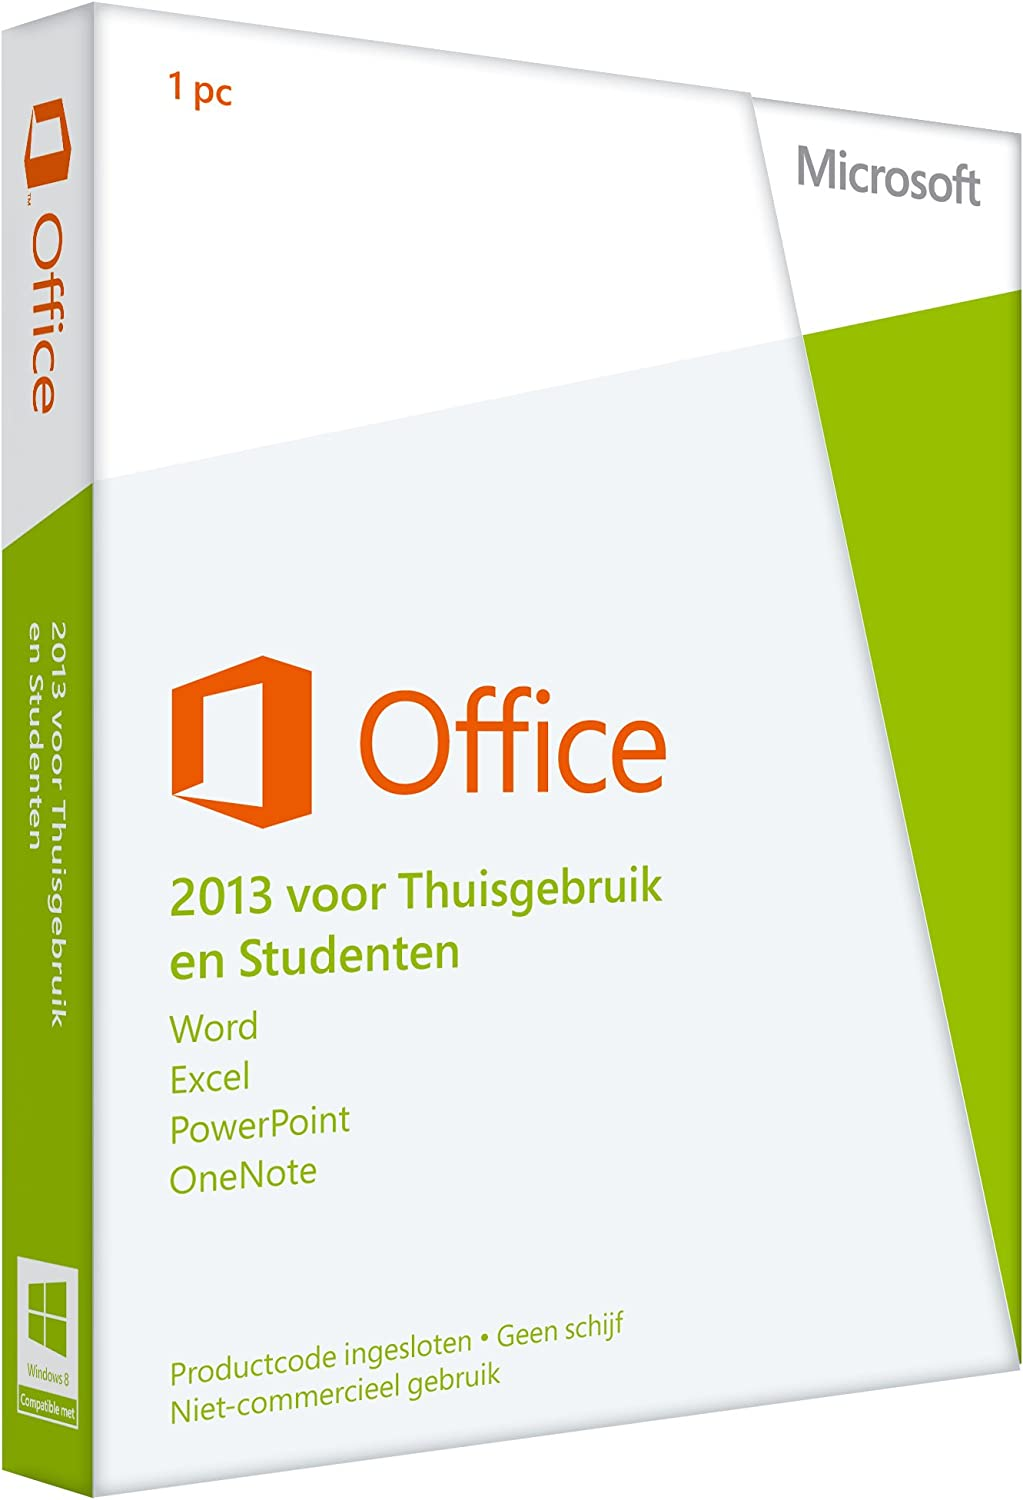 Microsoft Office Home and Student 2013 - Suites de programas (DUT, 3000 MB, 1024 MB, 1000 MHz, PC): Amazon.es: Software